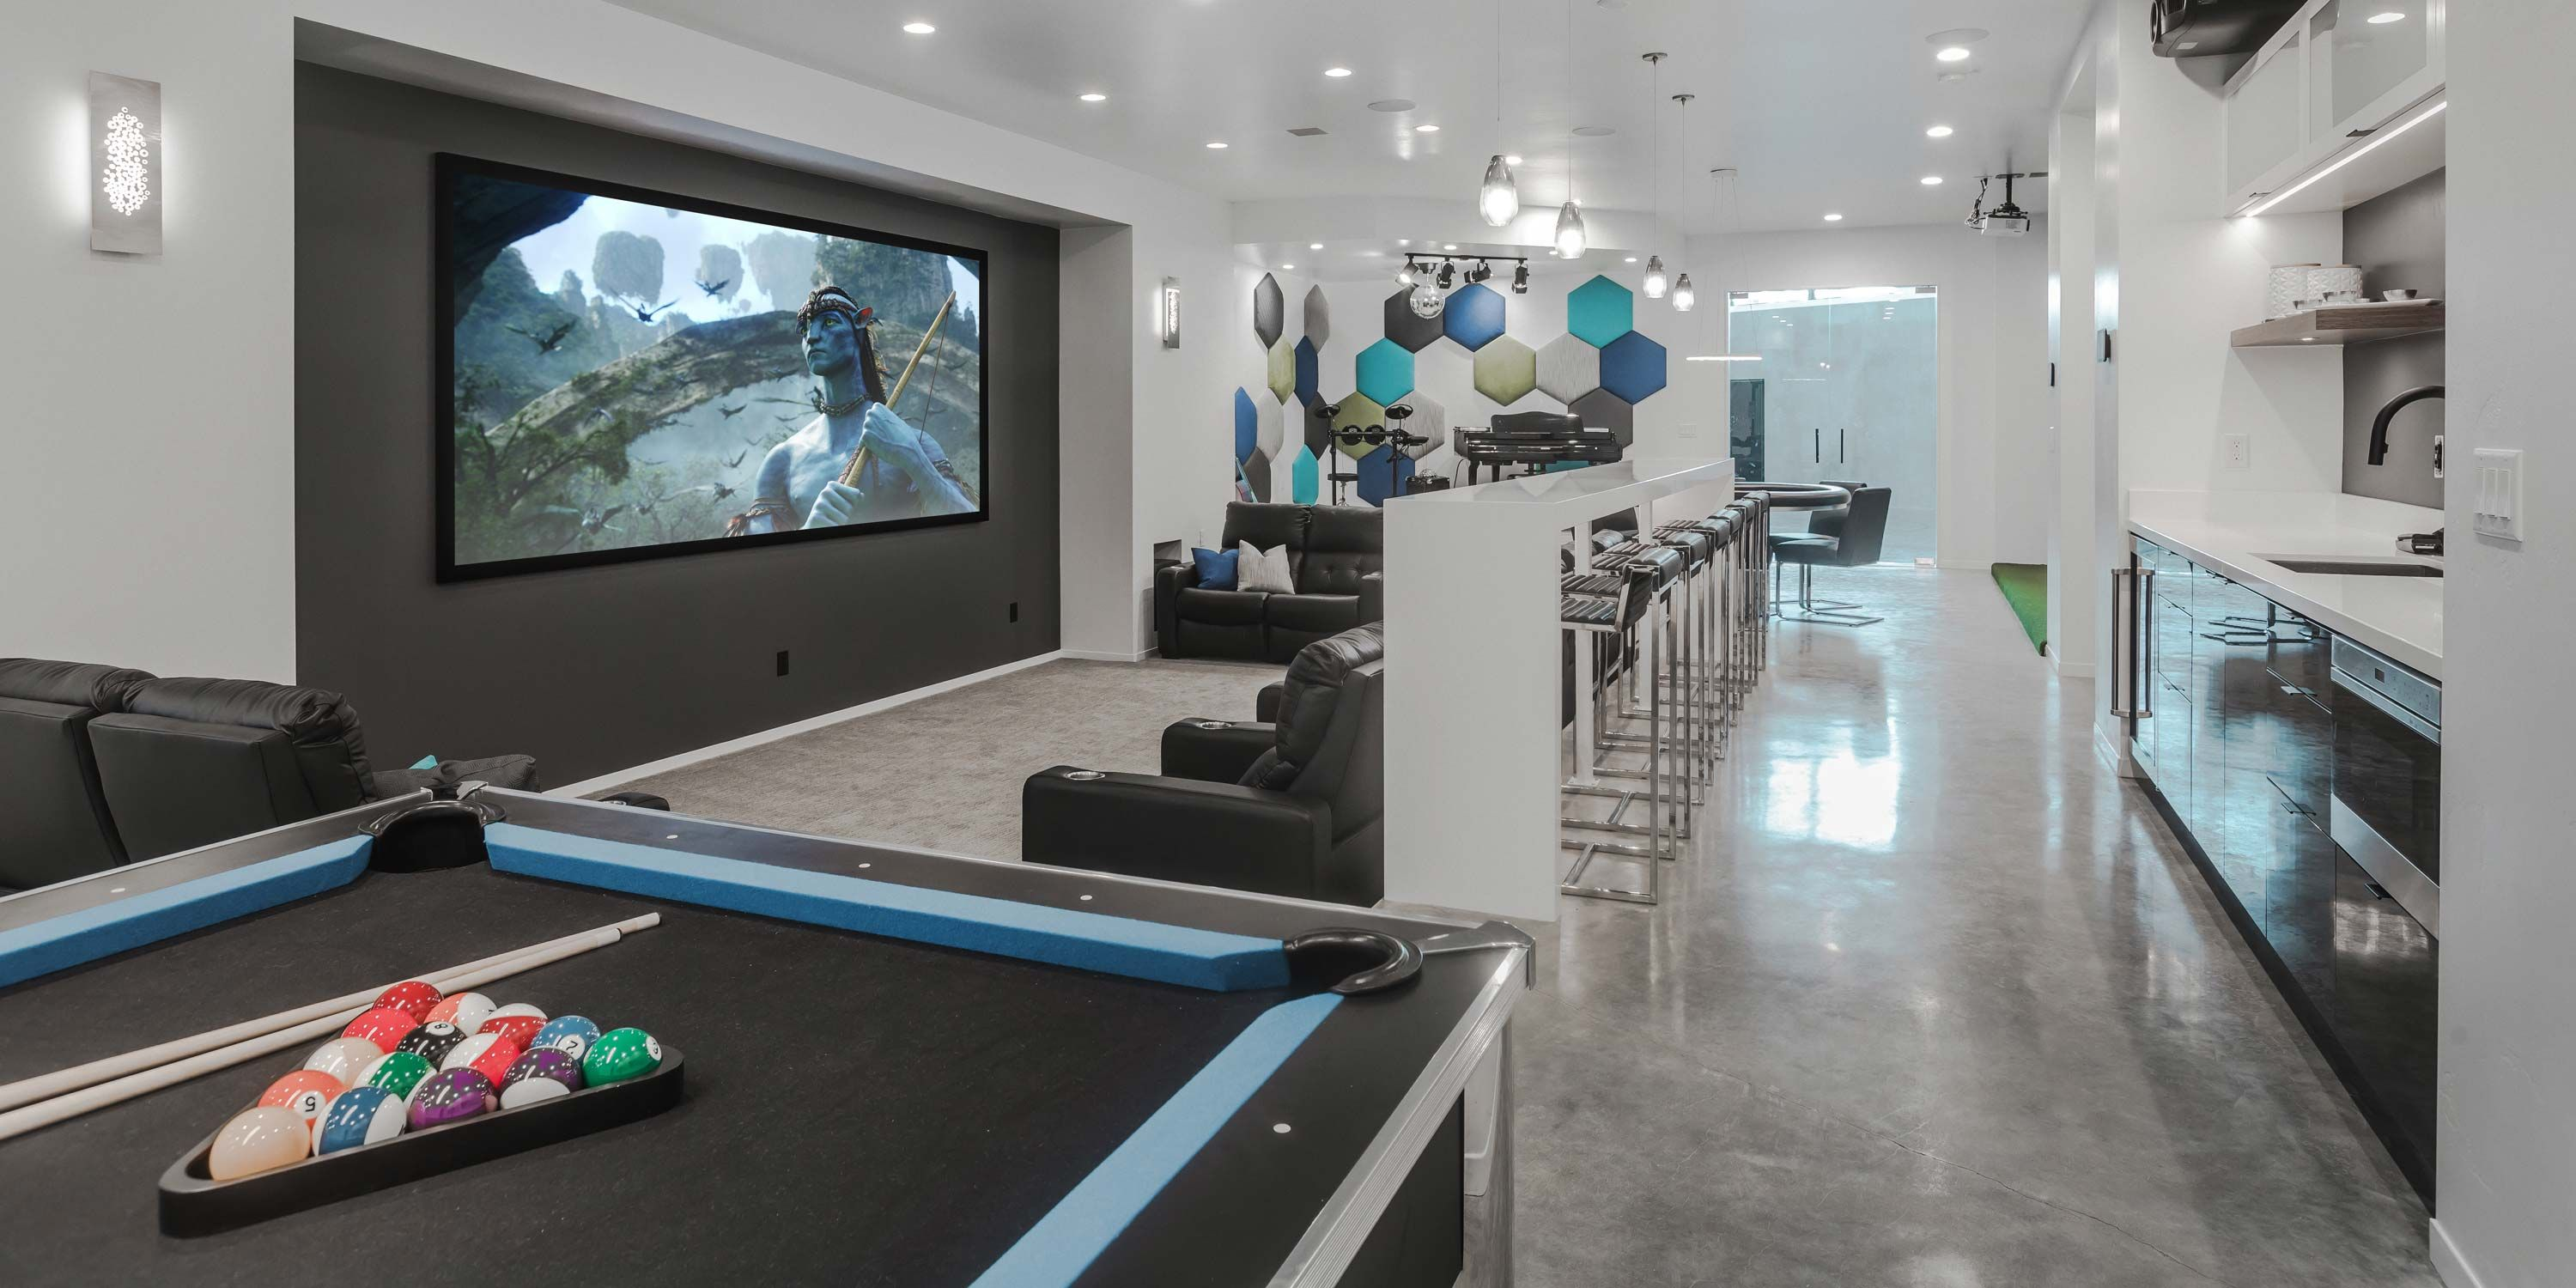 Lighting Control Systems Park City, UT, Indoor living, Home Automation, Smart Home Technology, Utah, Argenta, Bar Game Room